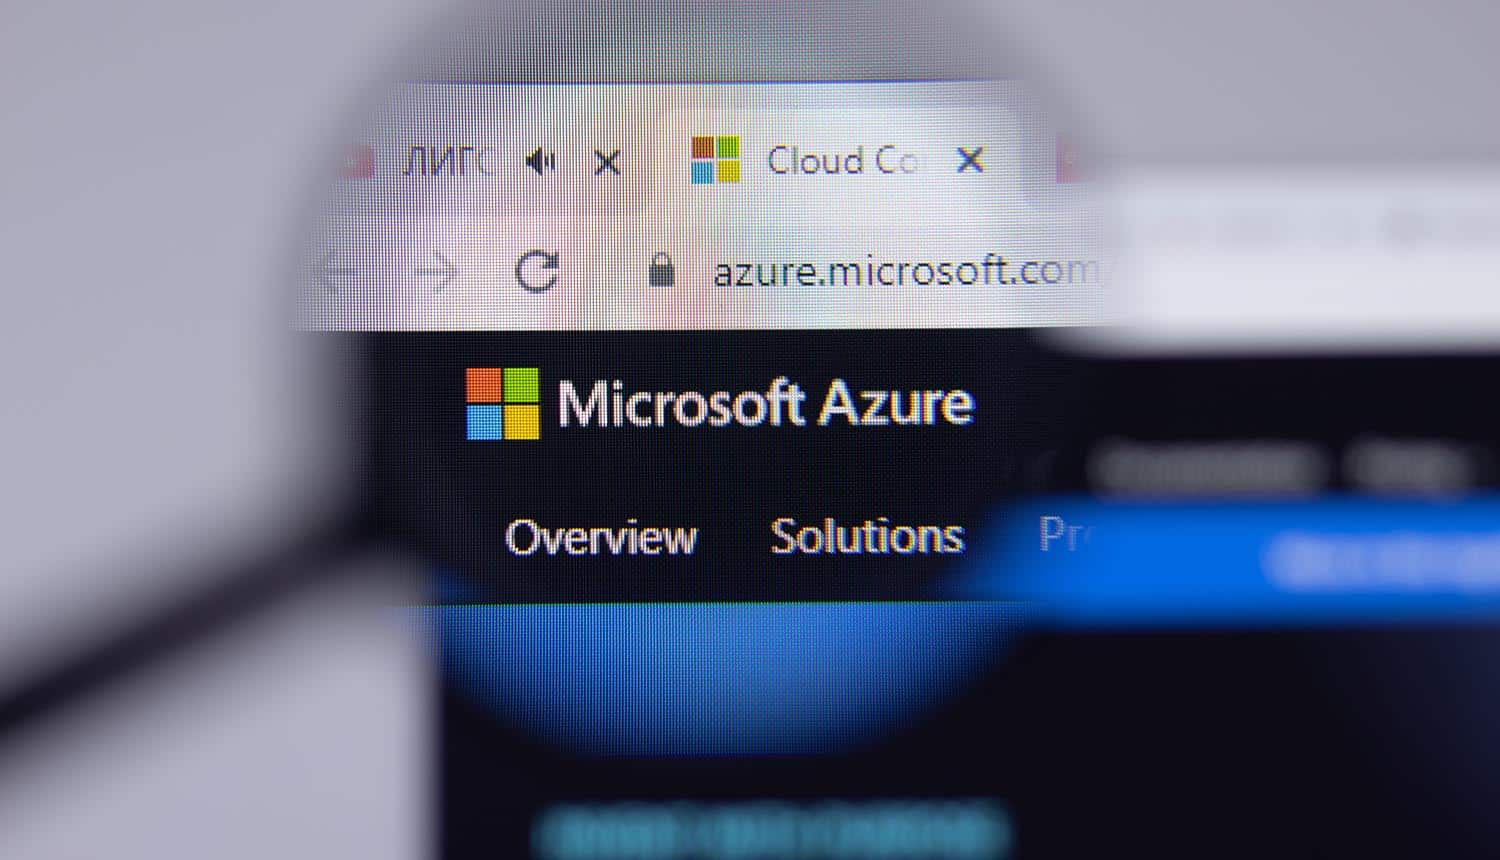 Microsoft Azure logo close-up on website page showing vulnerability with Cosmos DB cloud databases